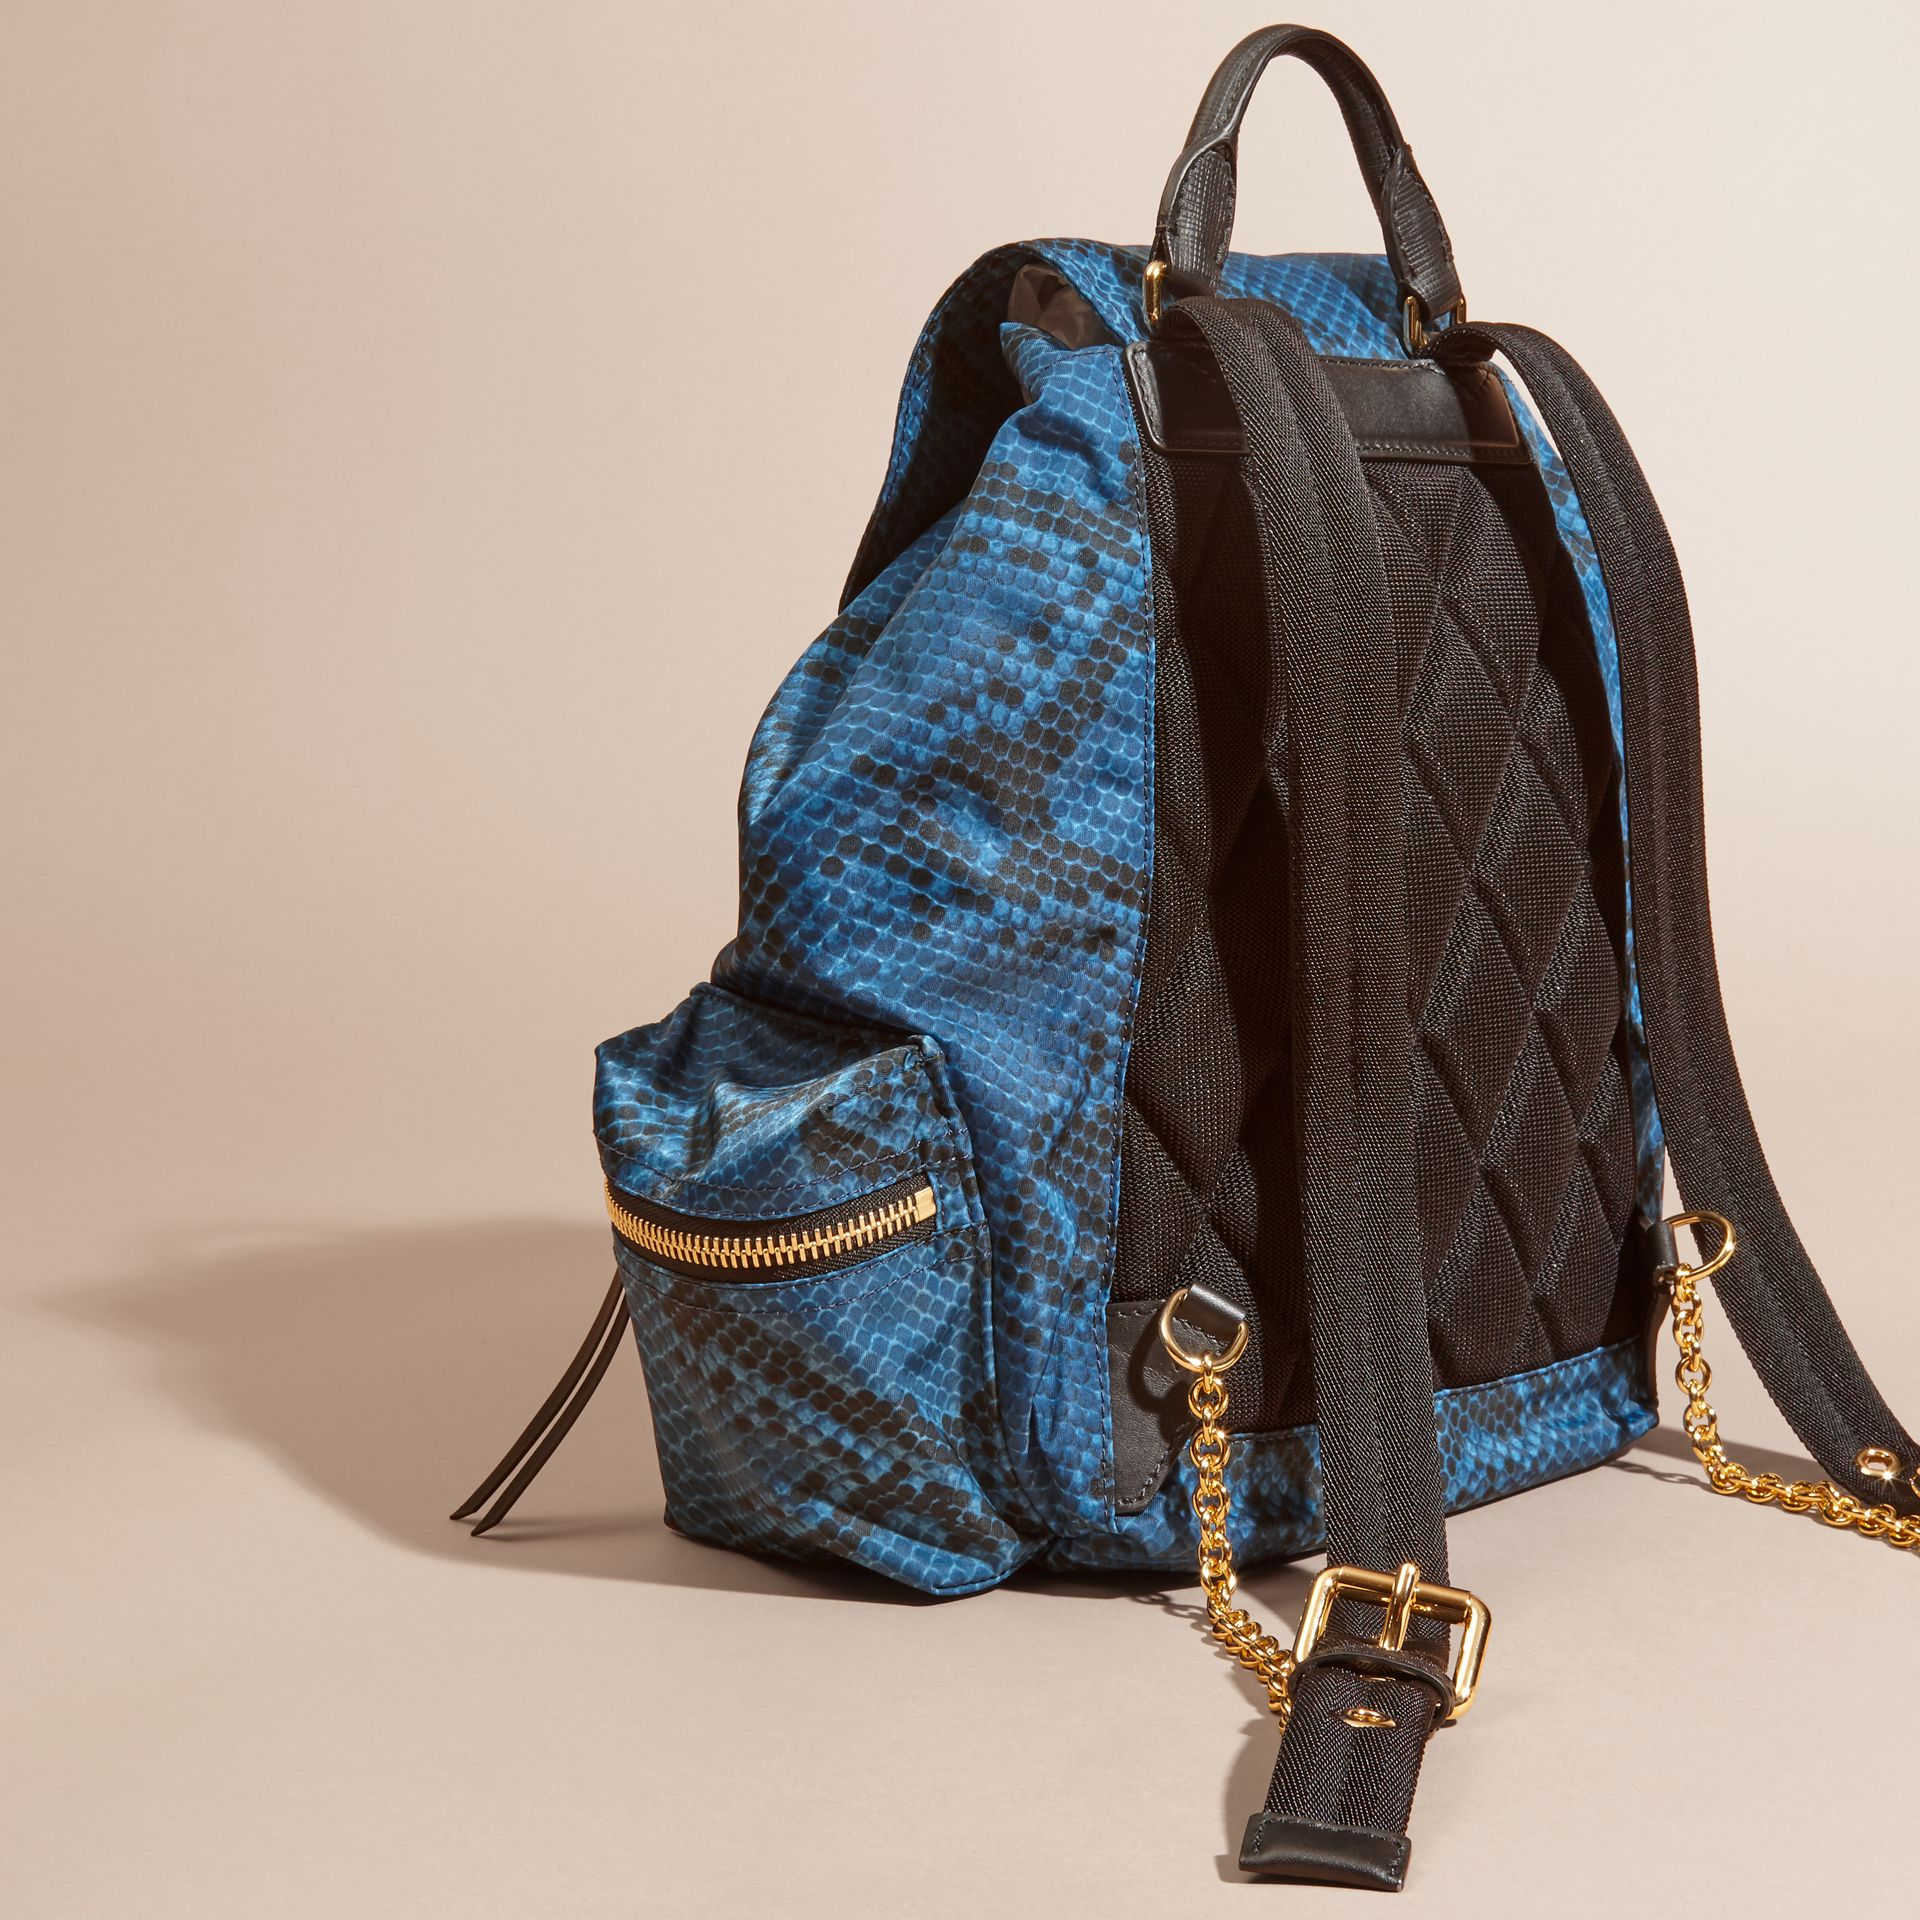 Bleu Sac The Rucksack medium en nylon à imprimé python et cuir Bleu - photo de la galerie 4